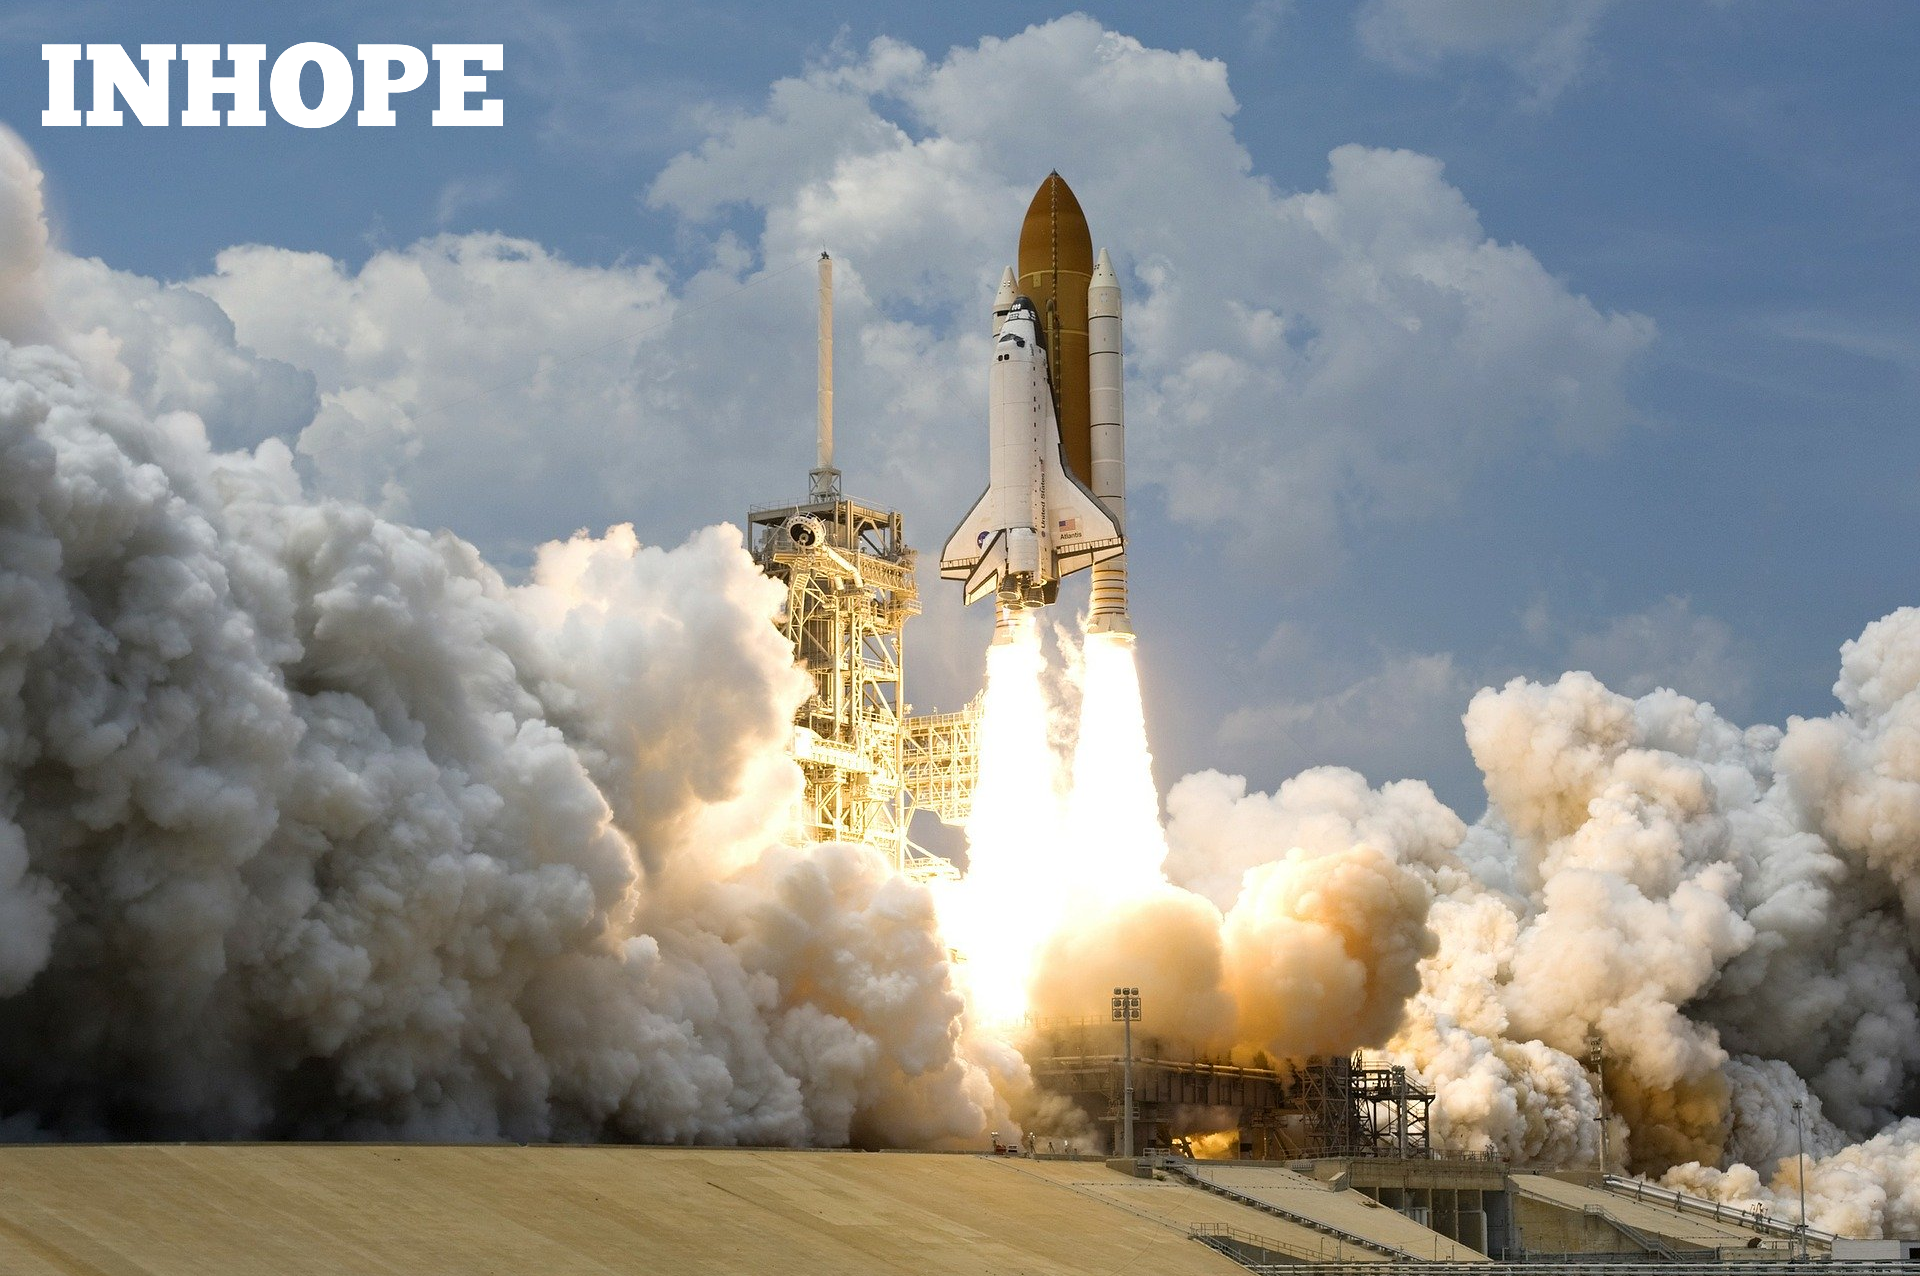 INHOPE Launches 2019 Annual Report